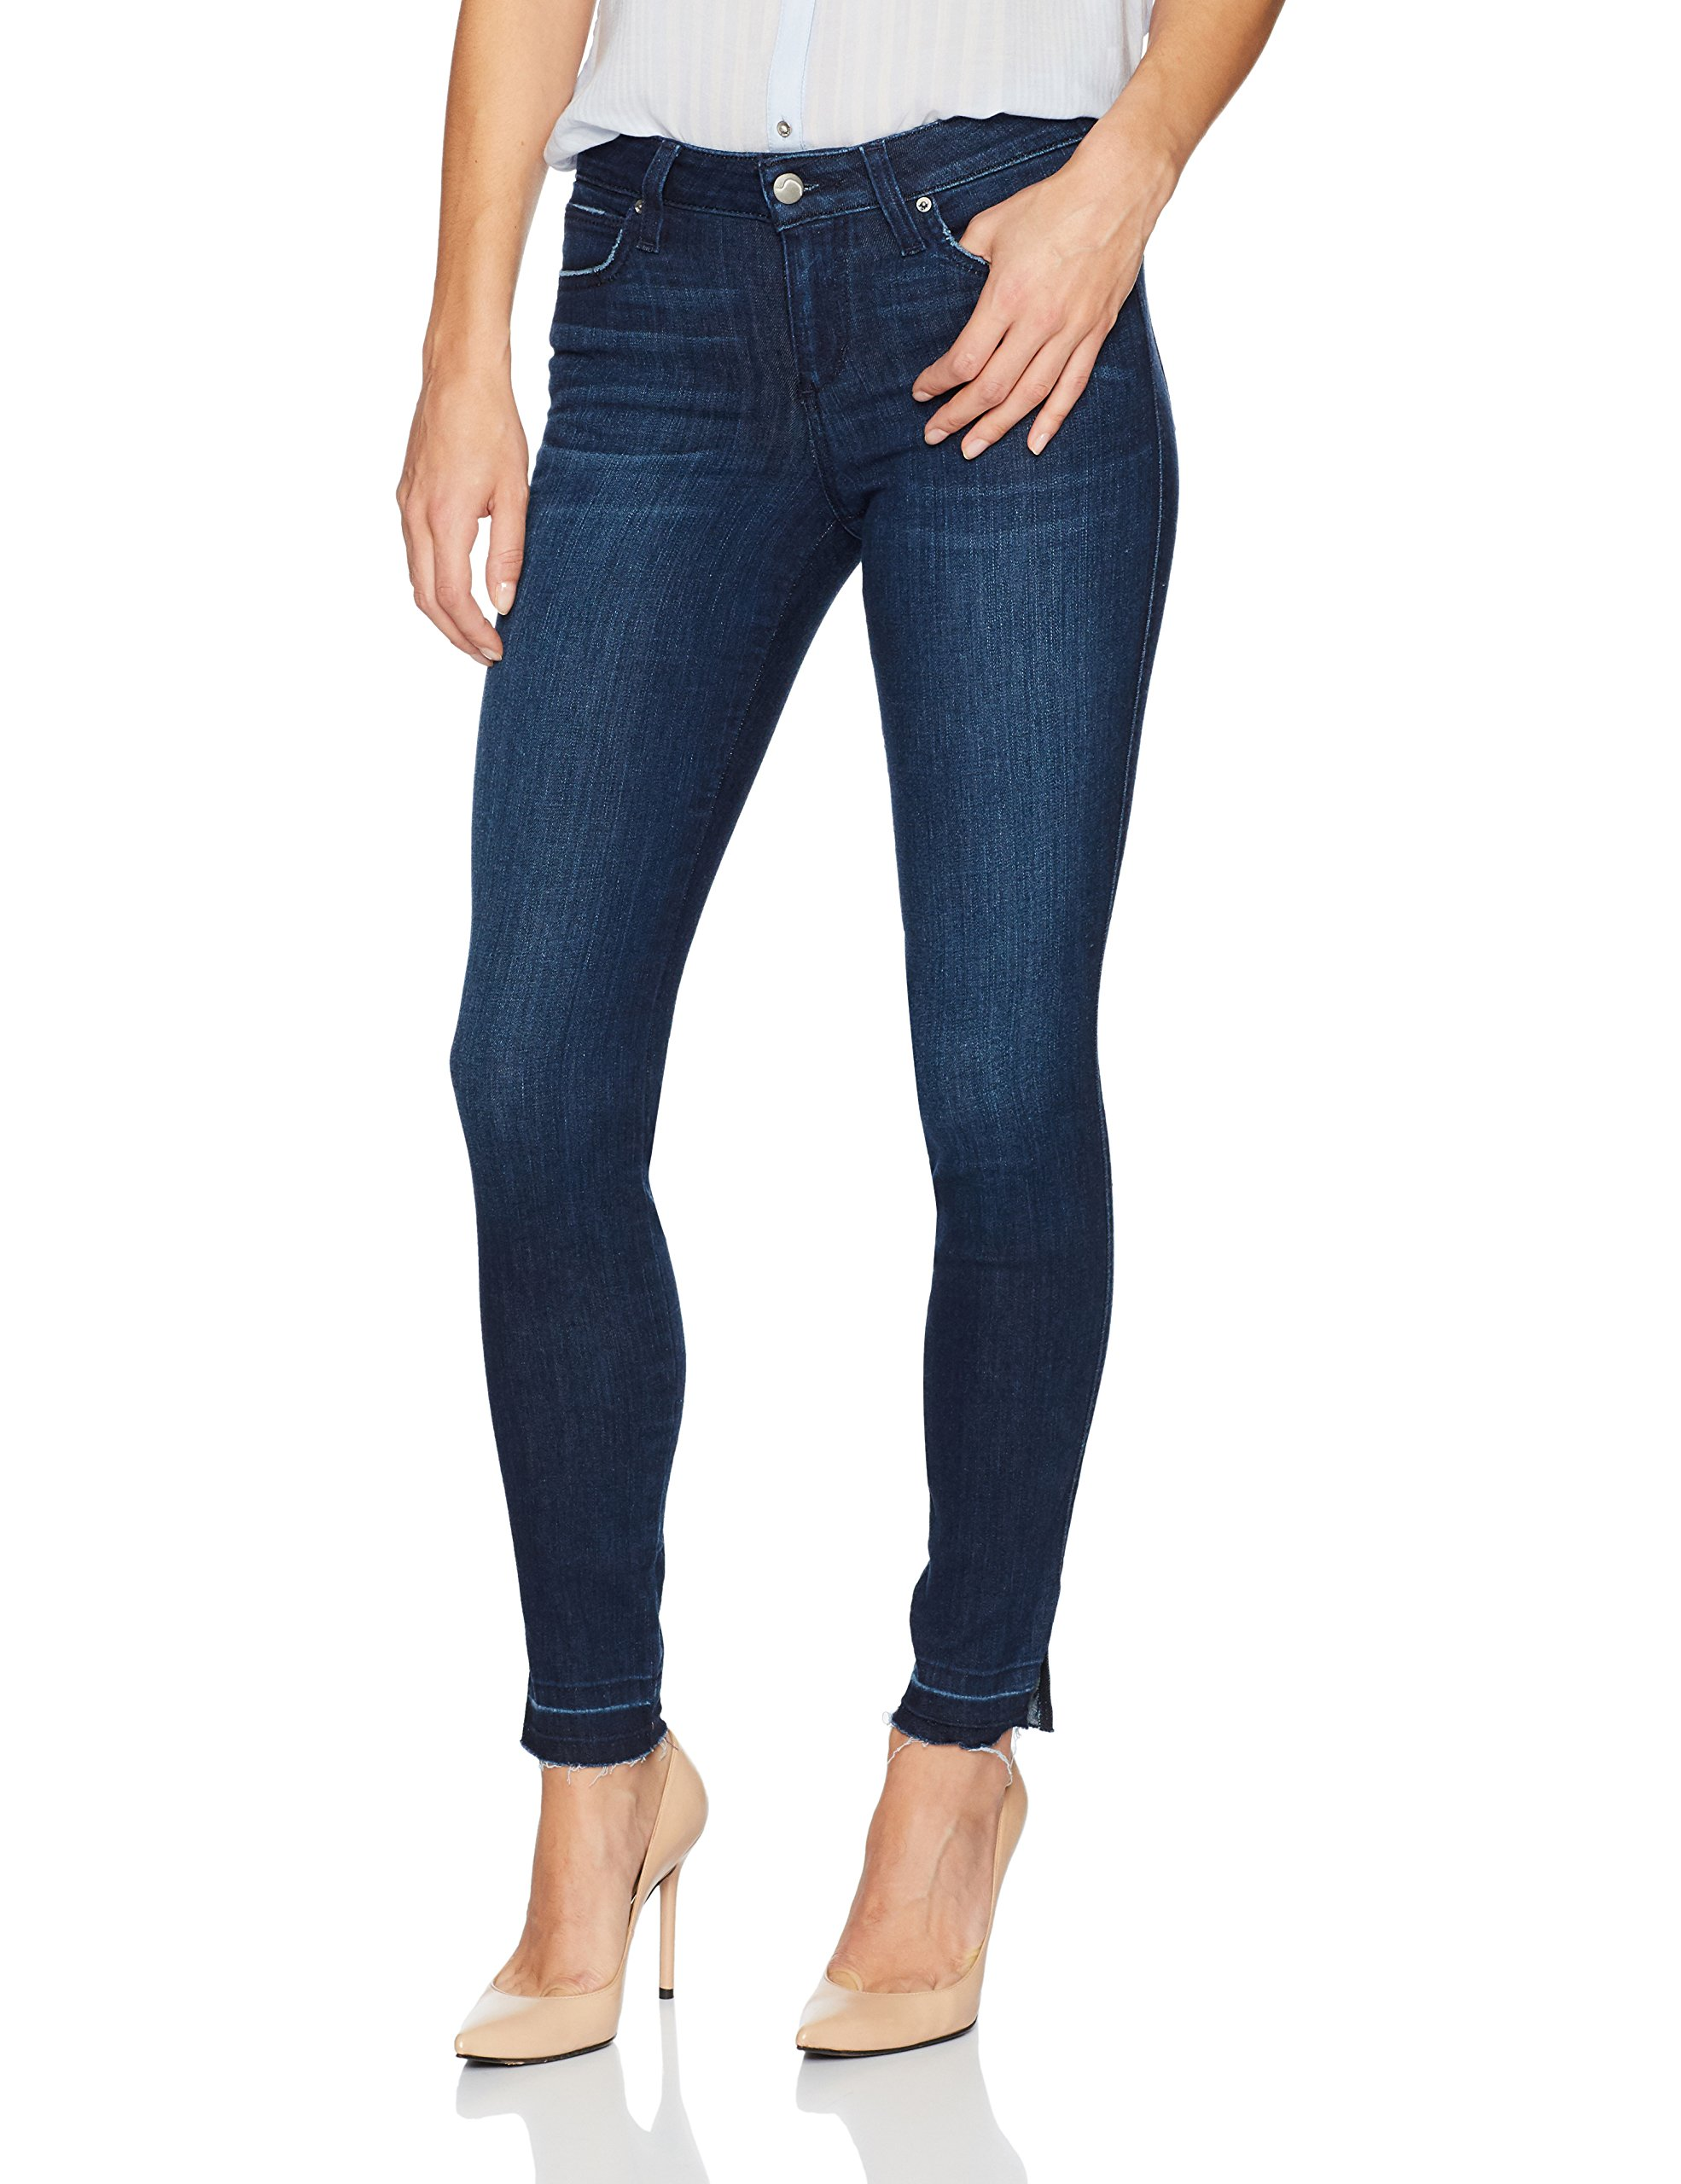 Joe's Jeans Women's Flawless Icon Midrise Skinny Ankle Jean, Lively, 25